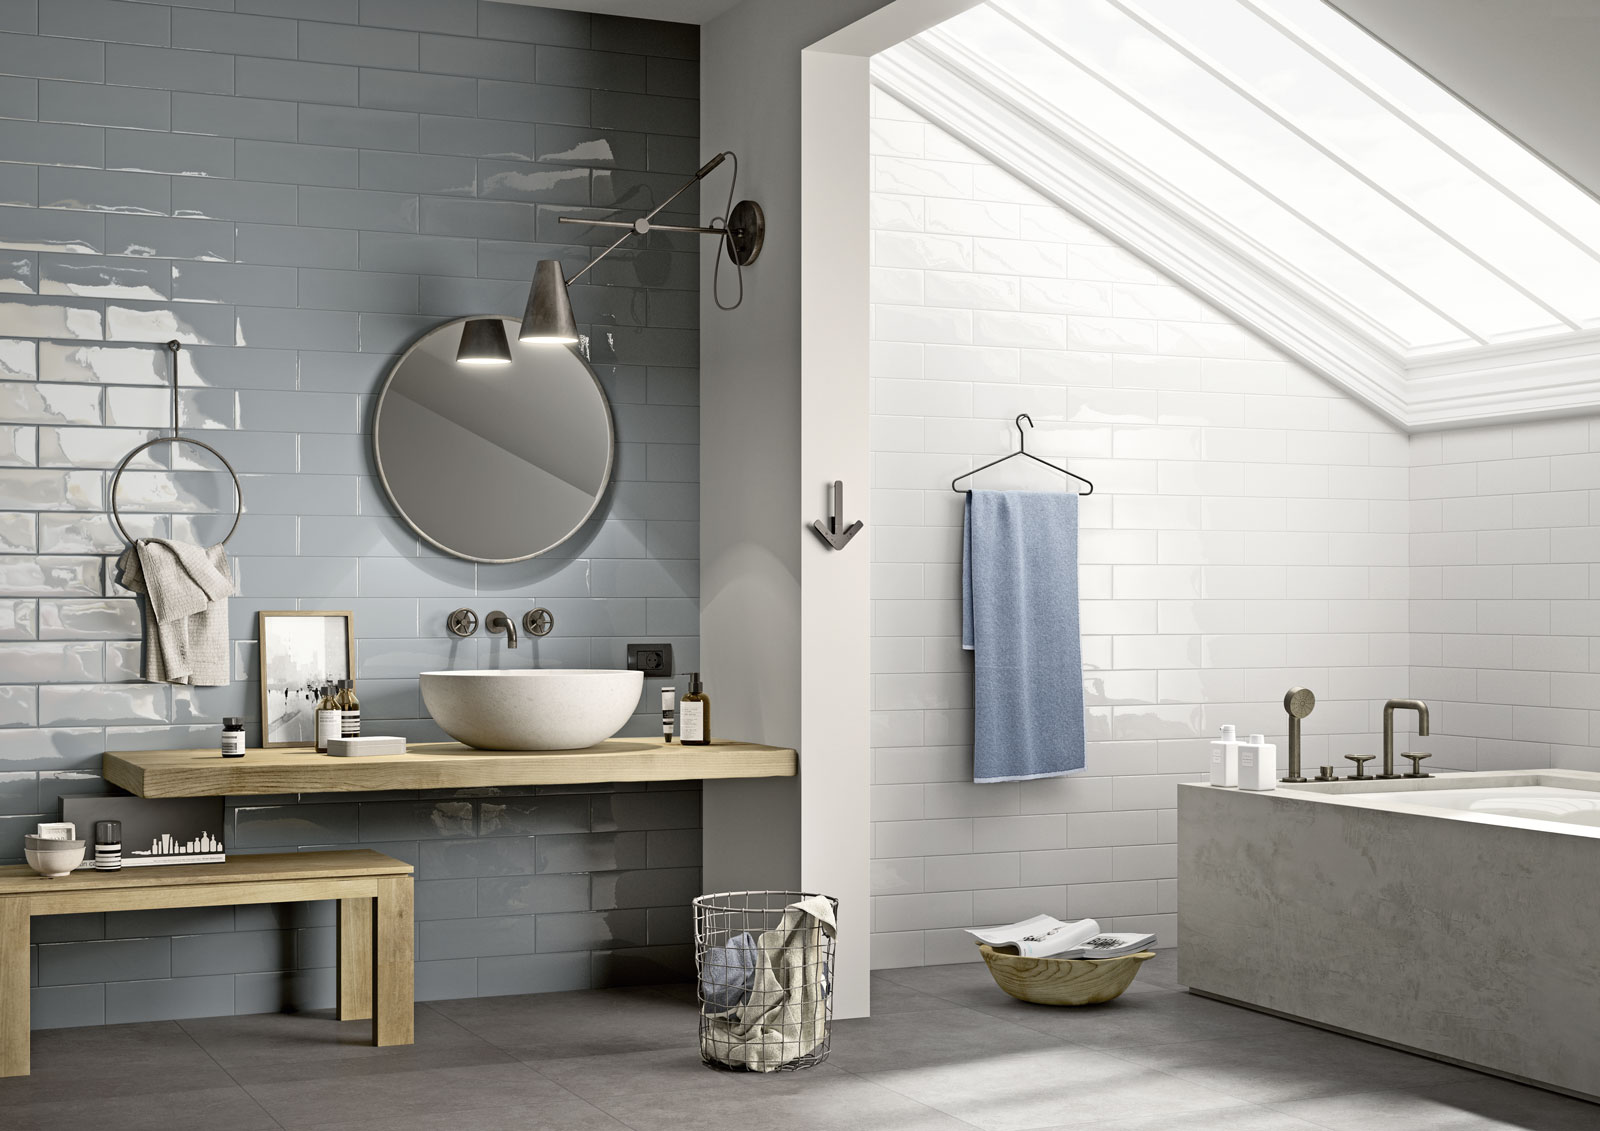 Mellow  Wall covering ceramic tiles  Marazzi